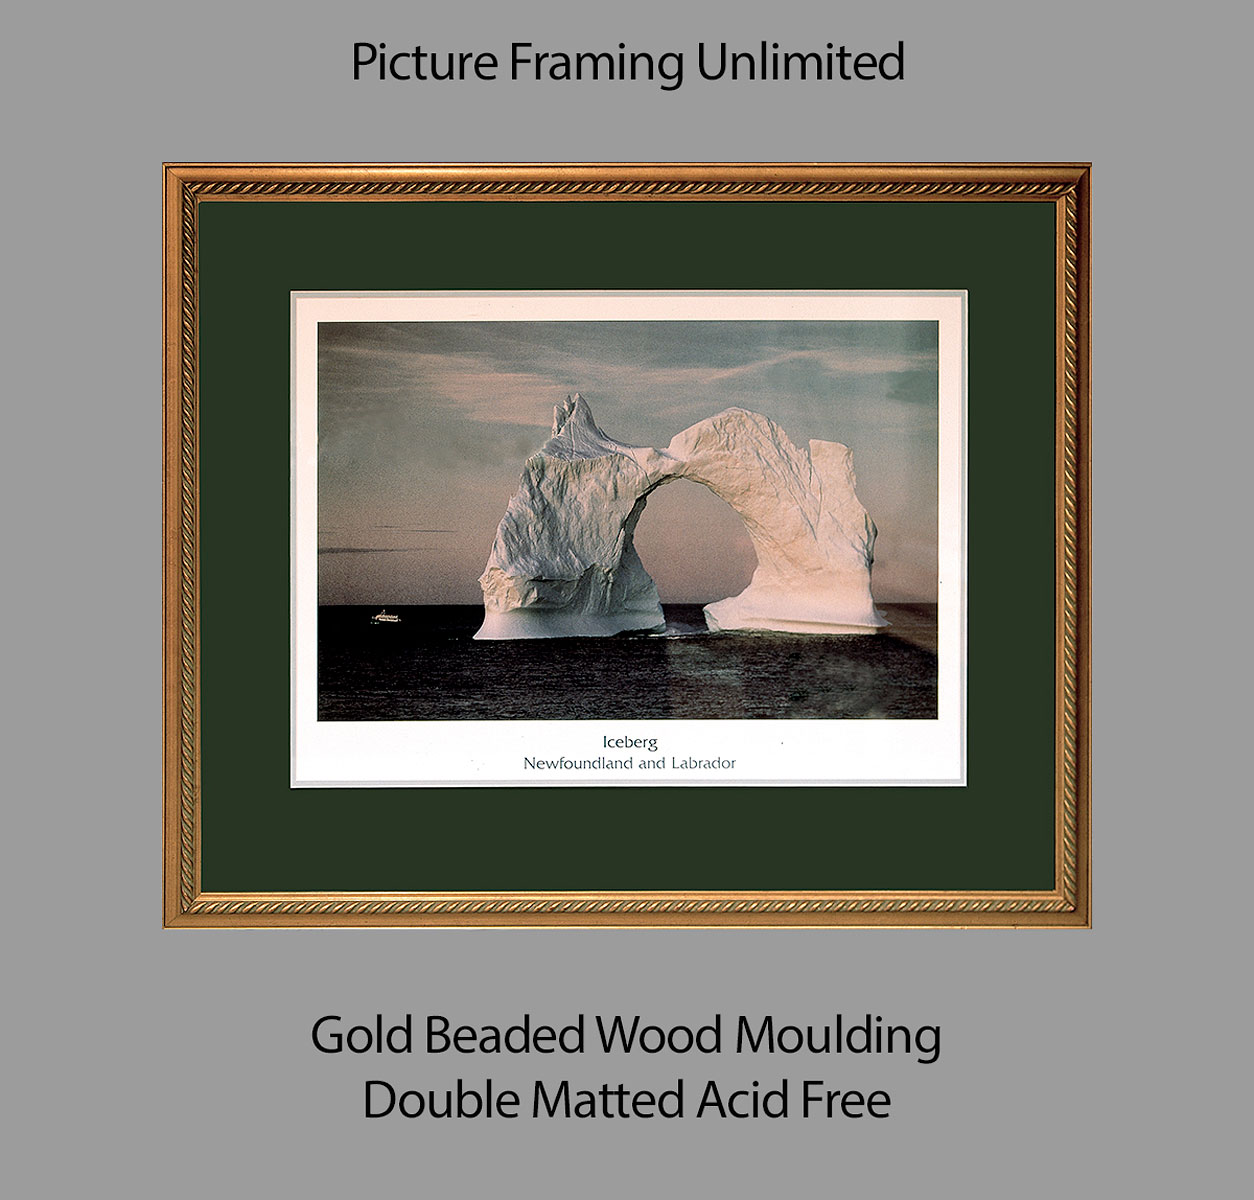 Gold Beaded Wood Moulding by Picture Framing Unlimited